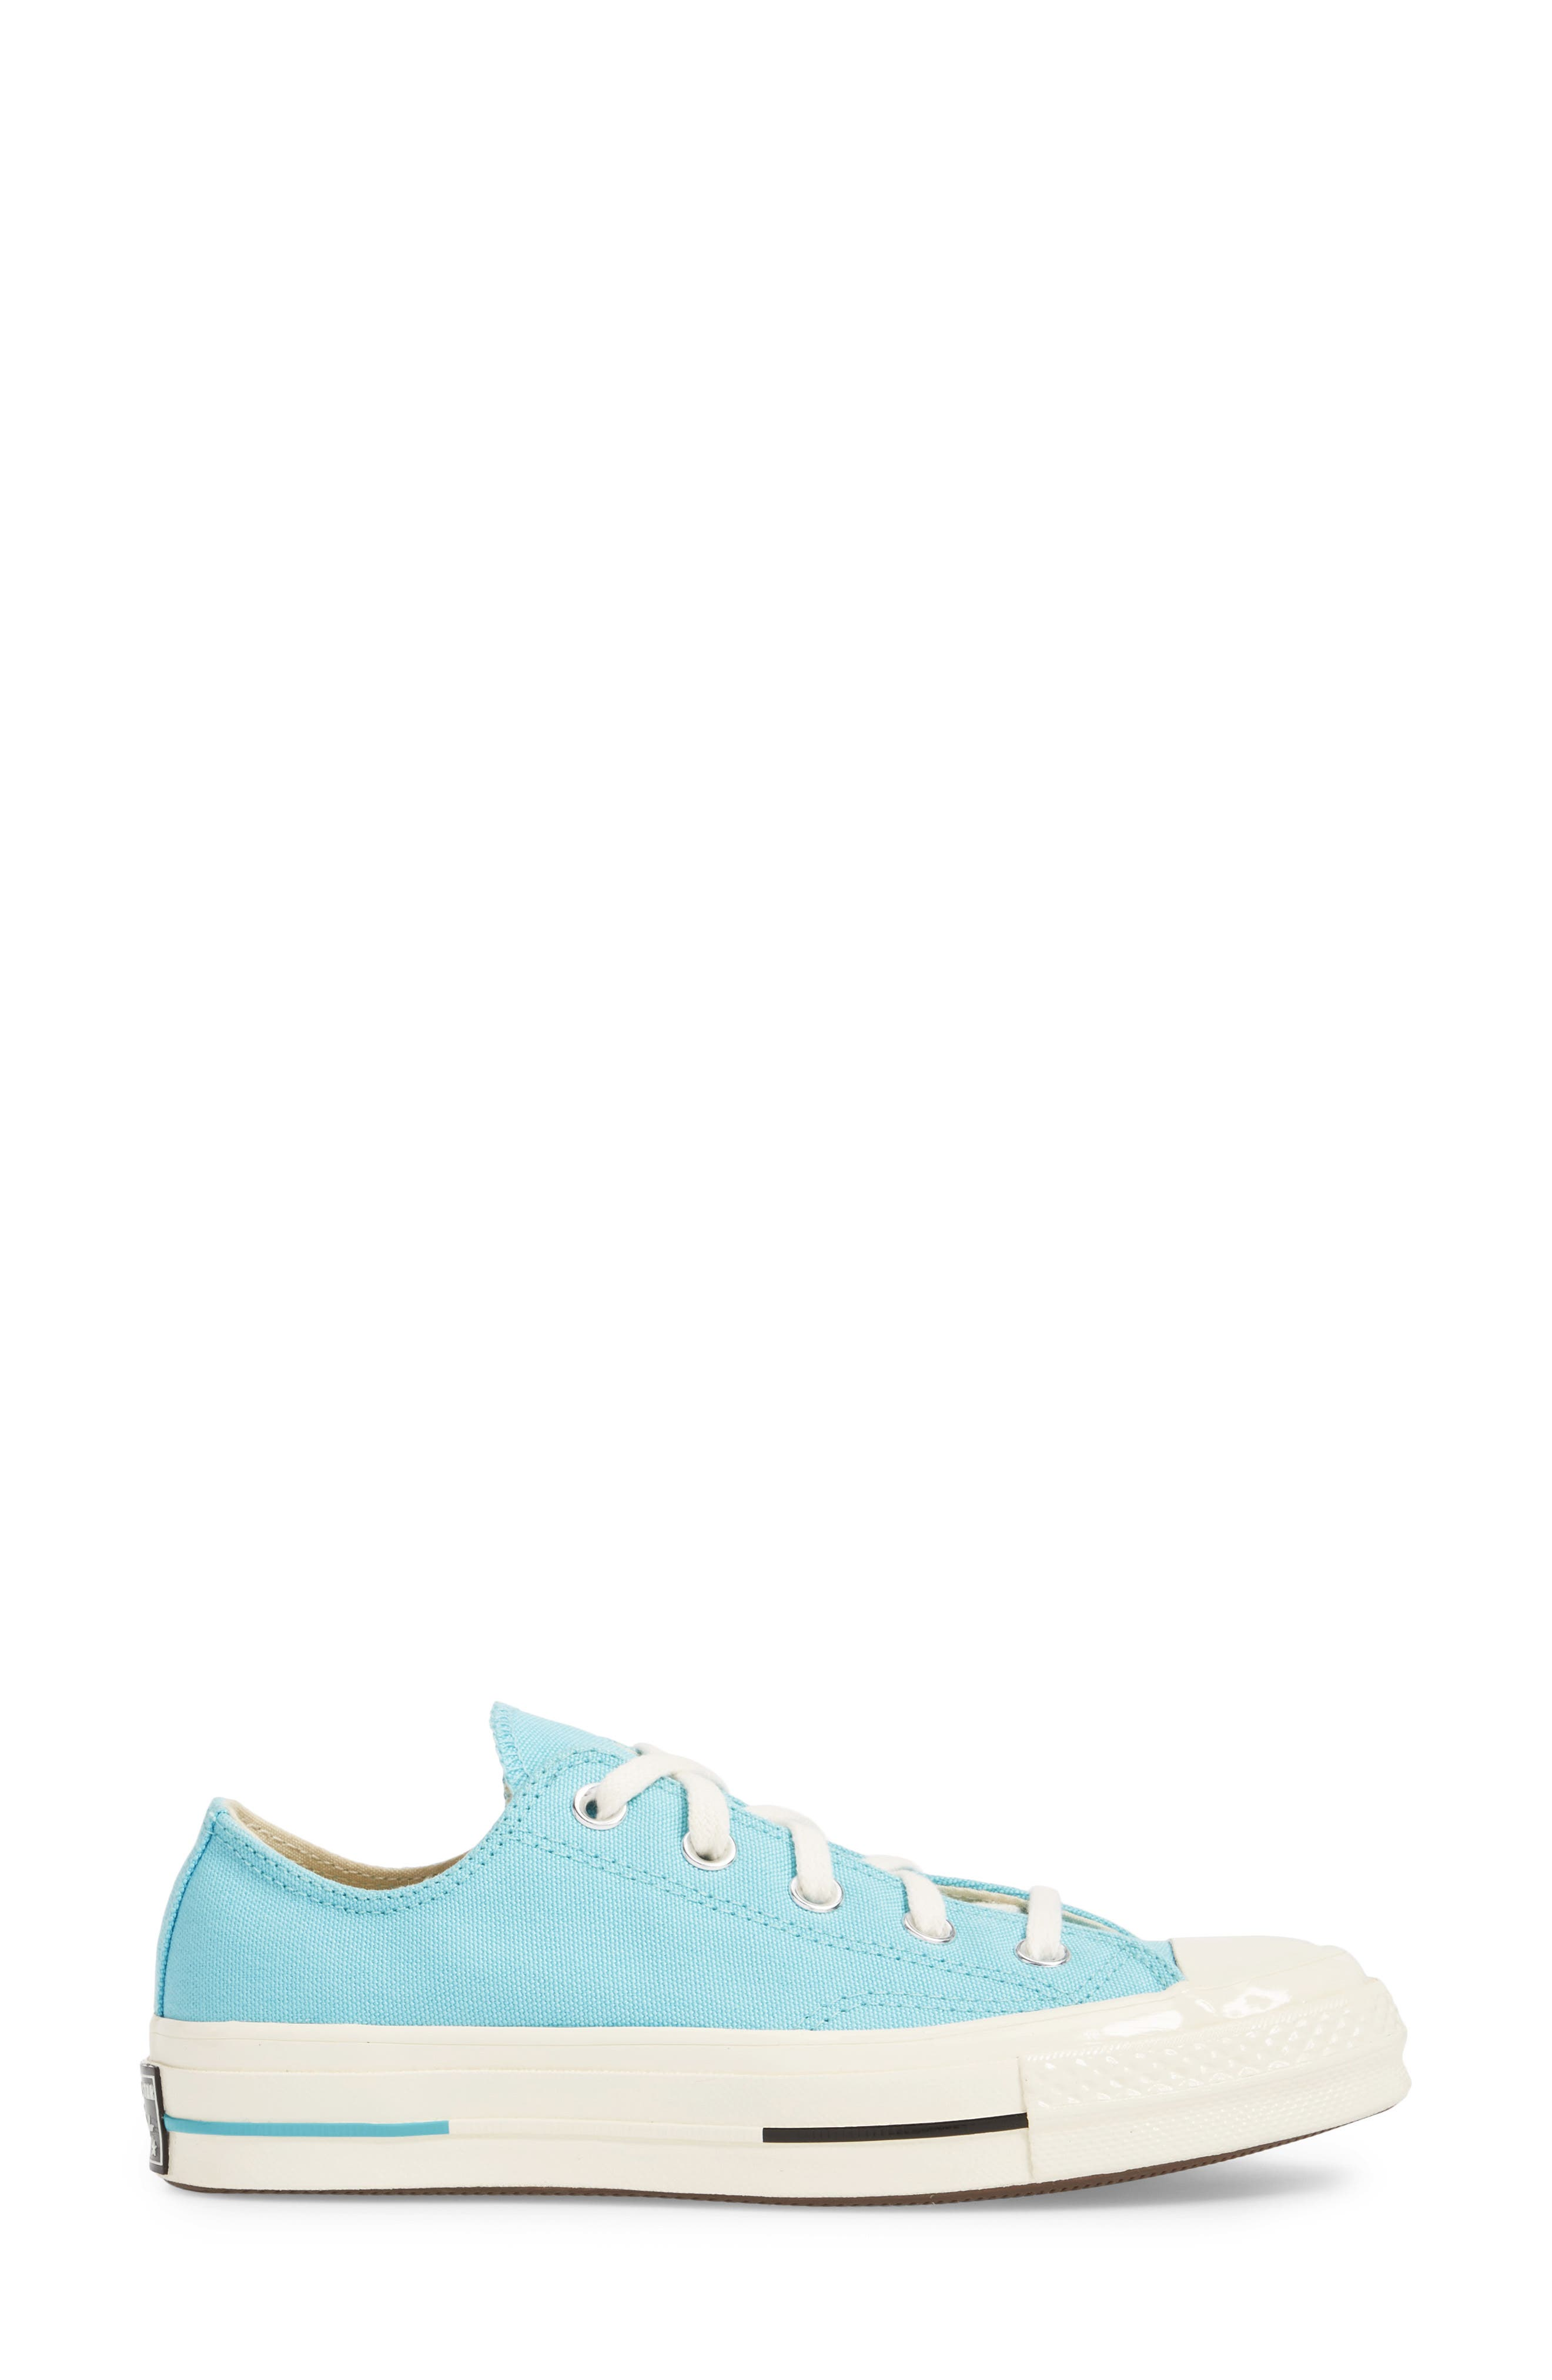 Chuck Taylor<sup>®</sup> All Star<sup>®</sup> '70s Brights Low Top Sneaker,                             Alternate thumbnail 3, color,                             Bleached Aqua